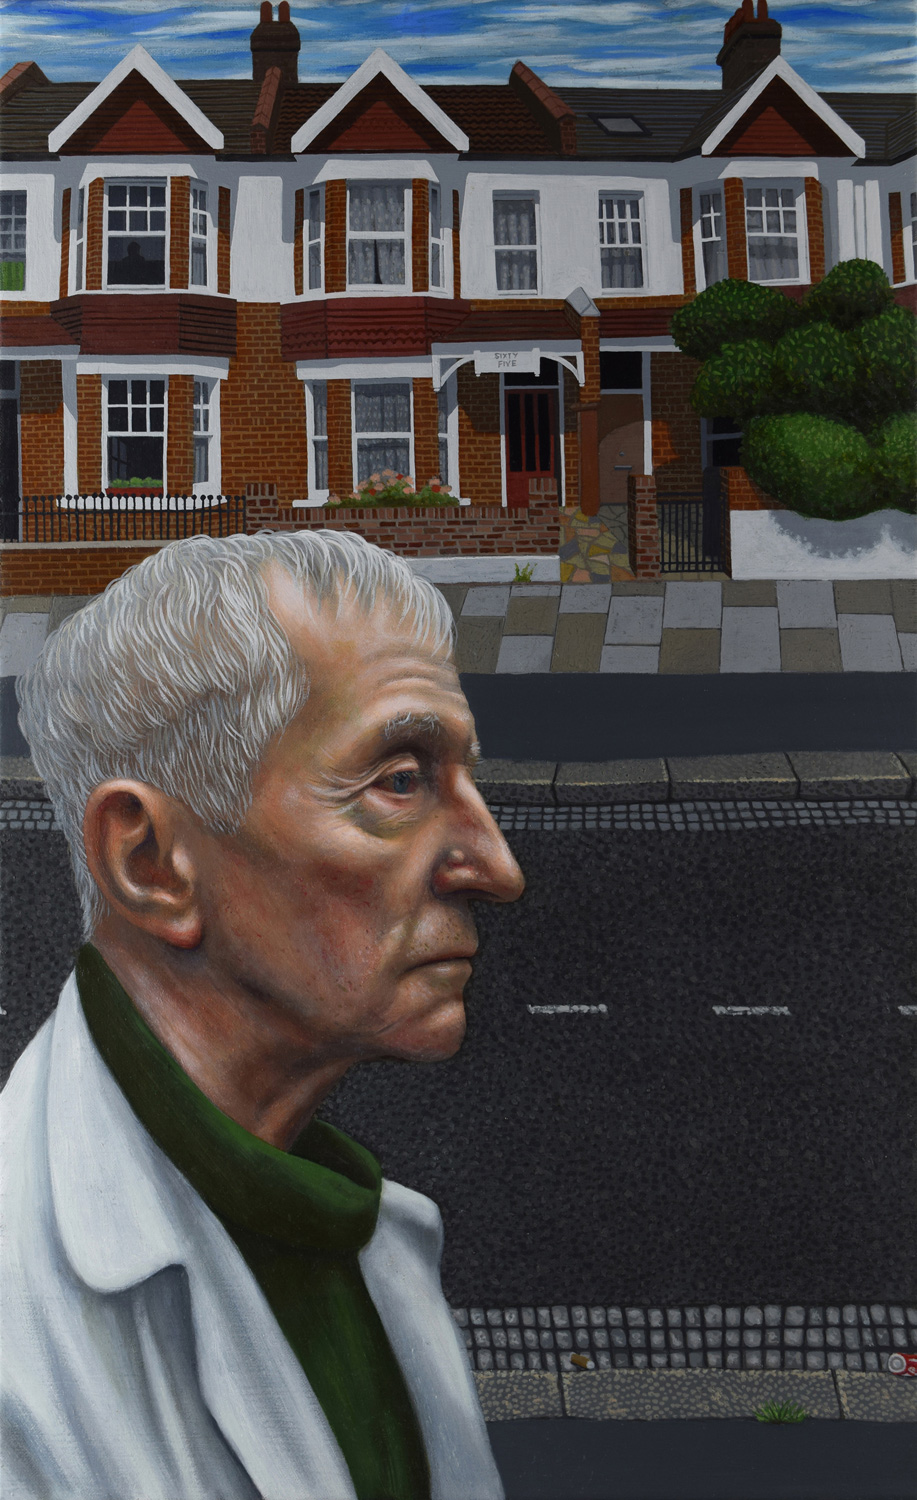 Author/Illustrator Raymond Briggs and Ashen Grove